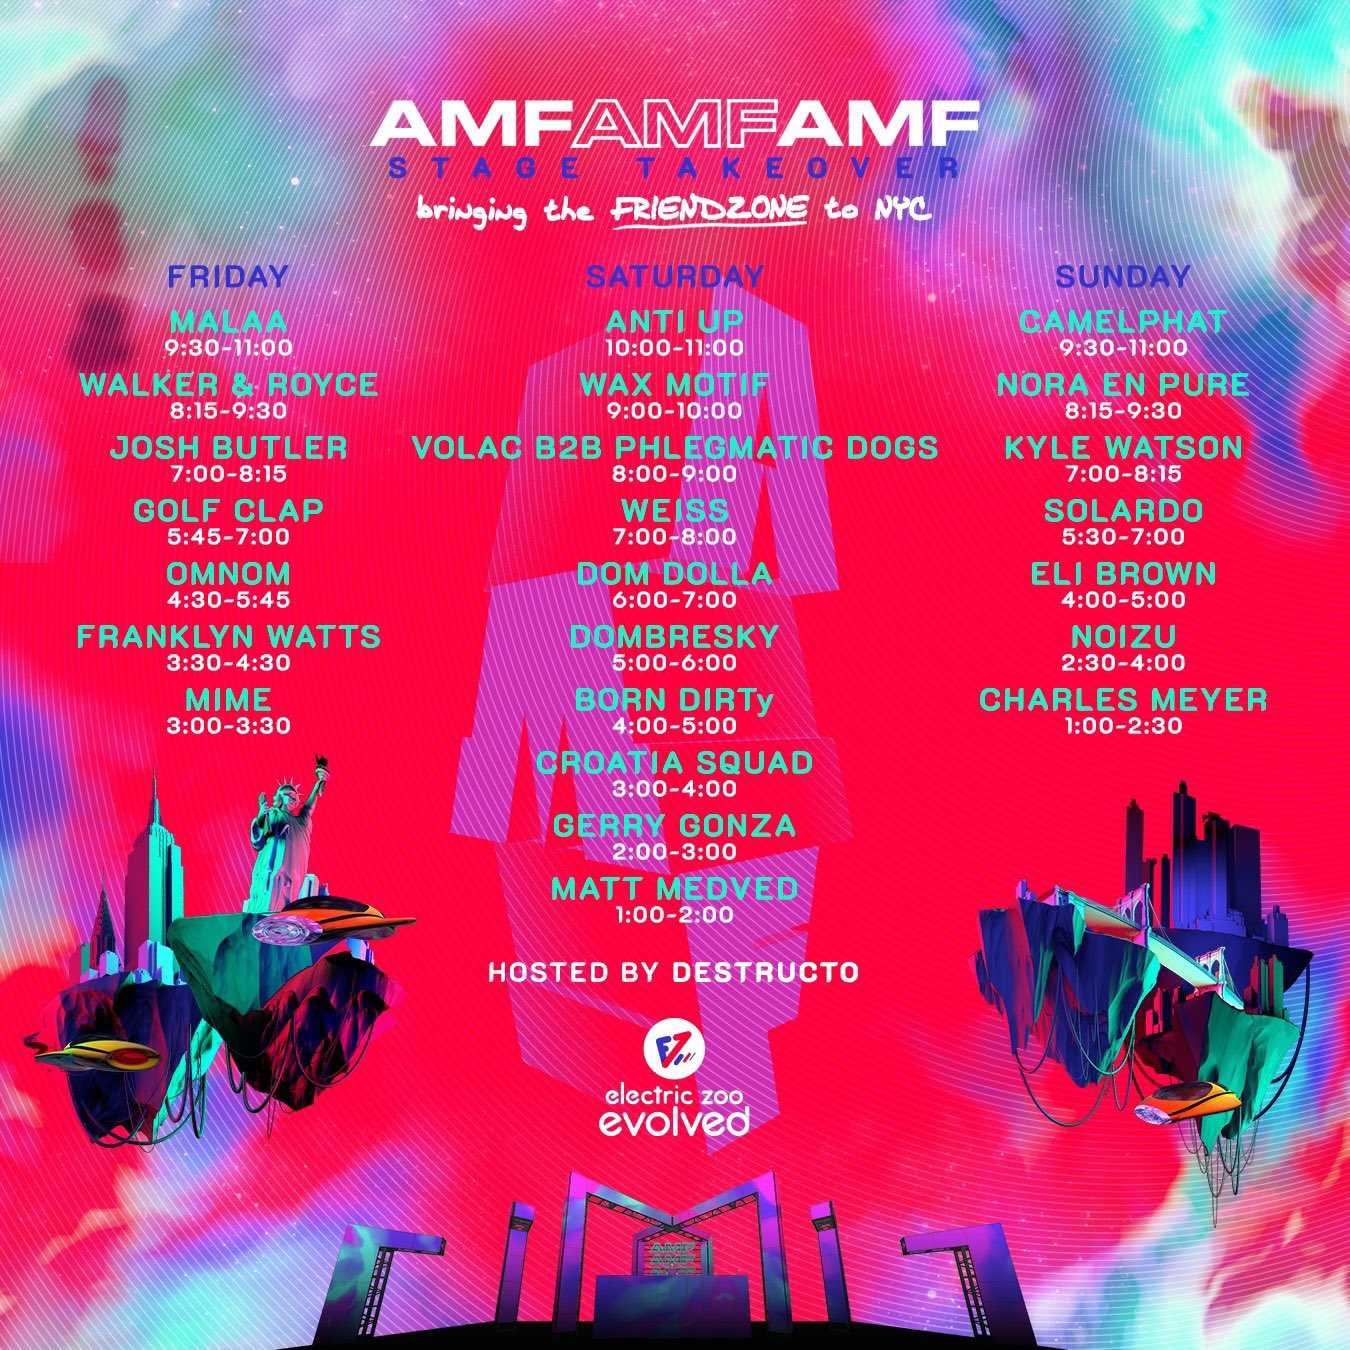 The Electric Zoo AMFAMFAMF lineup